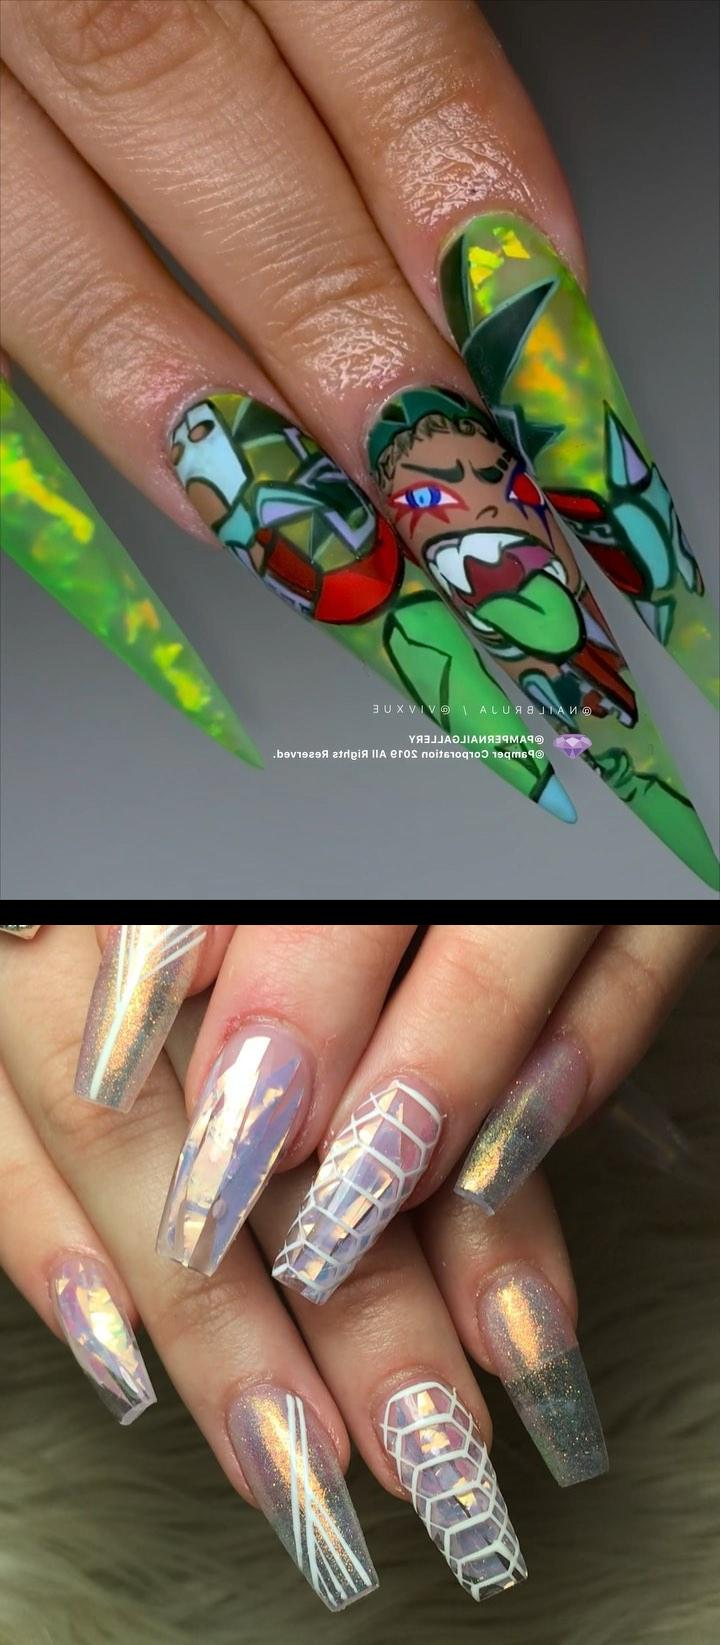 chrome nails,chrome nail polish,your next nail service pampernailgallery- - riconasty 6thdeity by Pamper Artist Laysa (nailbruja) with art collab by Vivian (vivxue) - your next Full Set, Fill, or Overlay service at pampernailgallery.com Now open in Fremont, California!- , getpamper , pampernailgallery , nails , oaklandnails , sanjosenails , bayareanails , vegasnails , sfnails , livermorenails , fremontnails , haywardnails , milpitasnails , 510nails , bayareanailtech , rainbownails , jellynails , mattenails , cartoonnails , riconasty , mylarnails , greennails , neonnails , cutenails No filter needed.